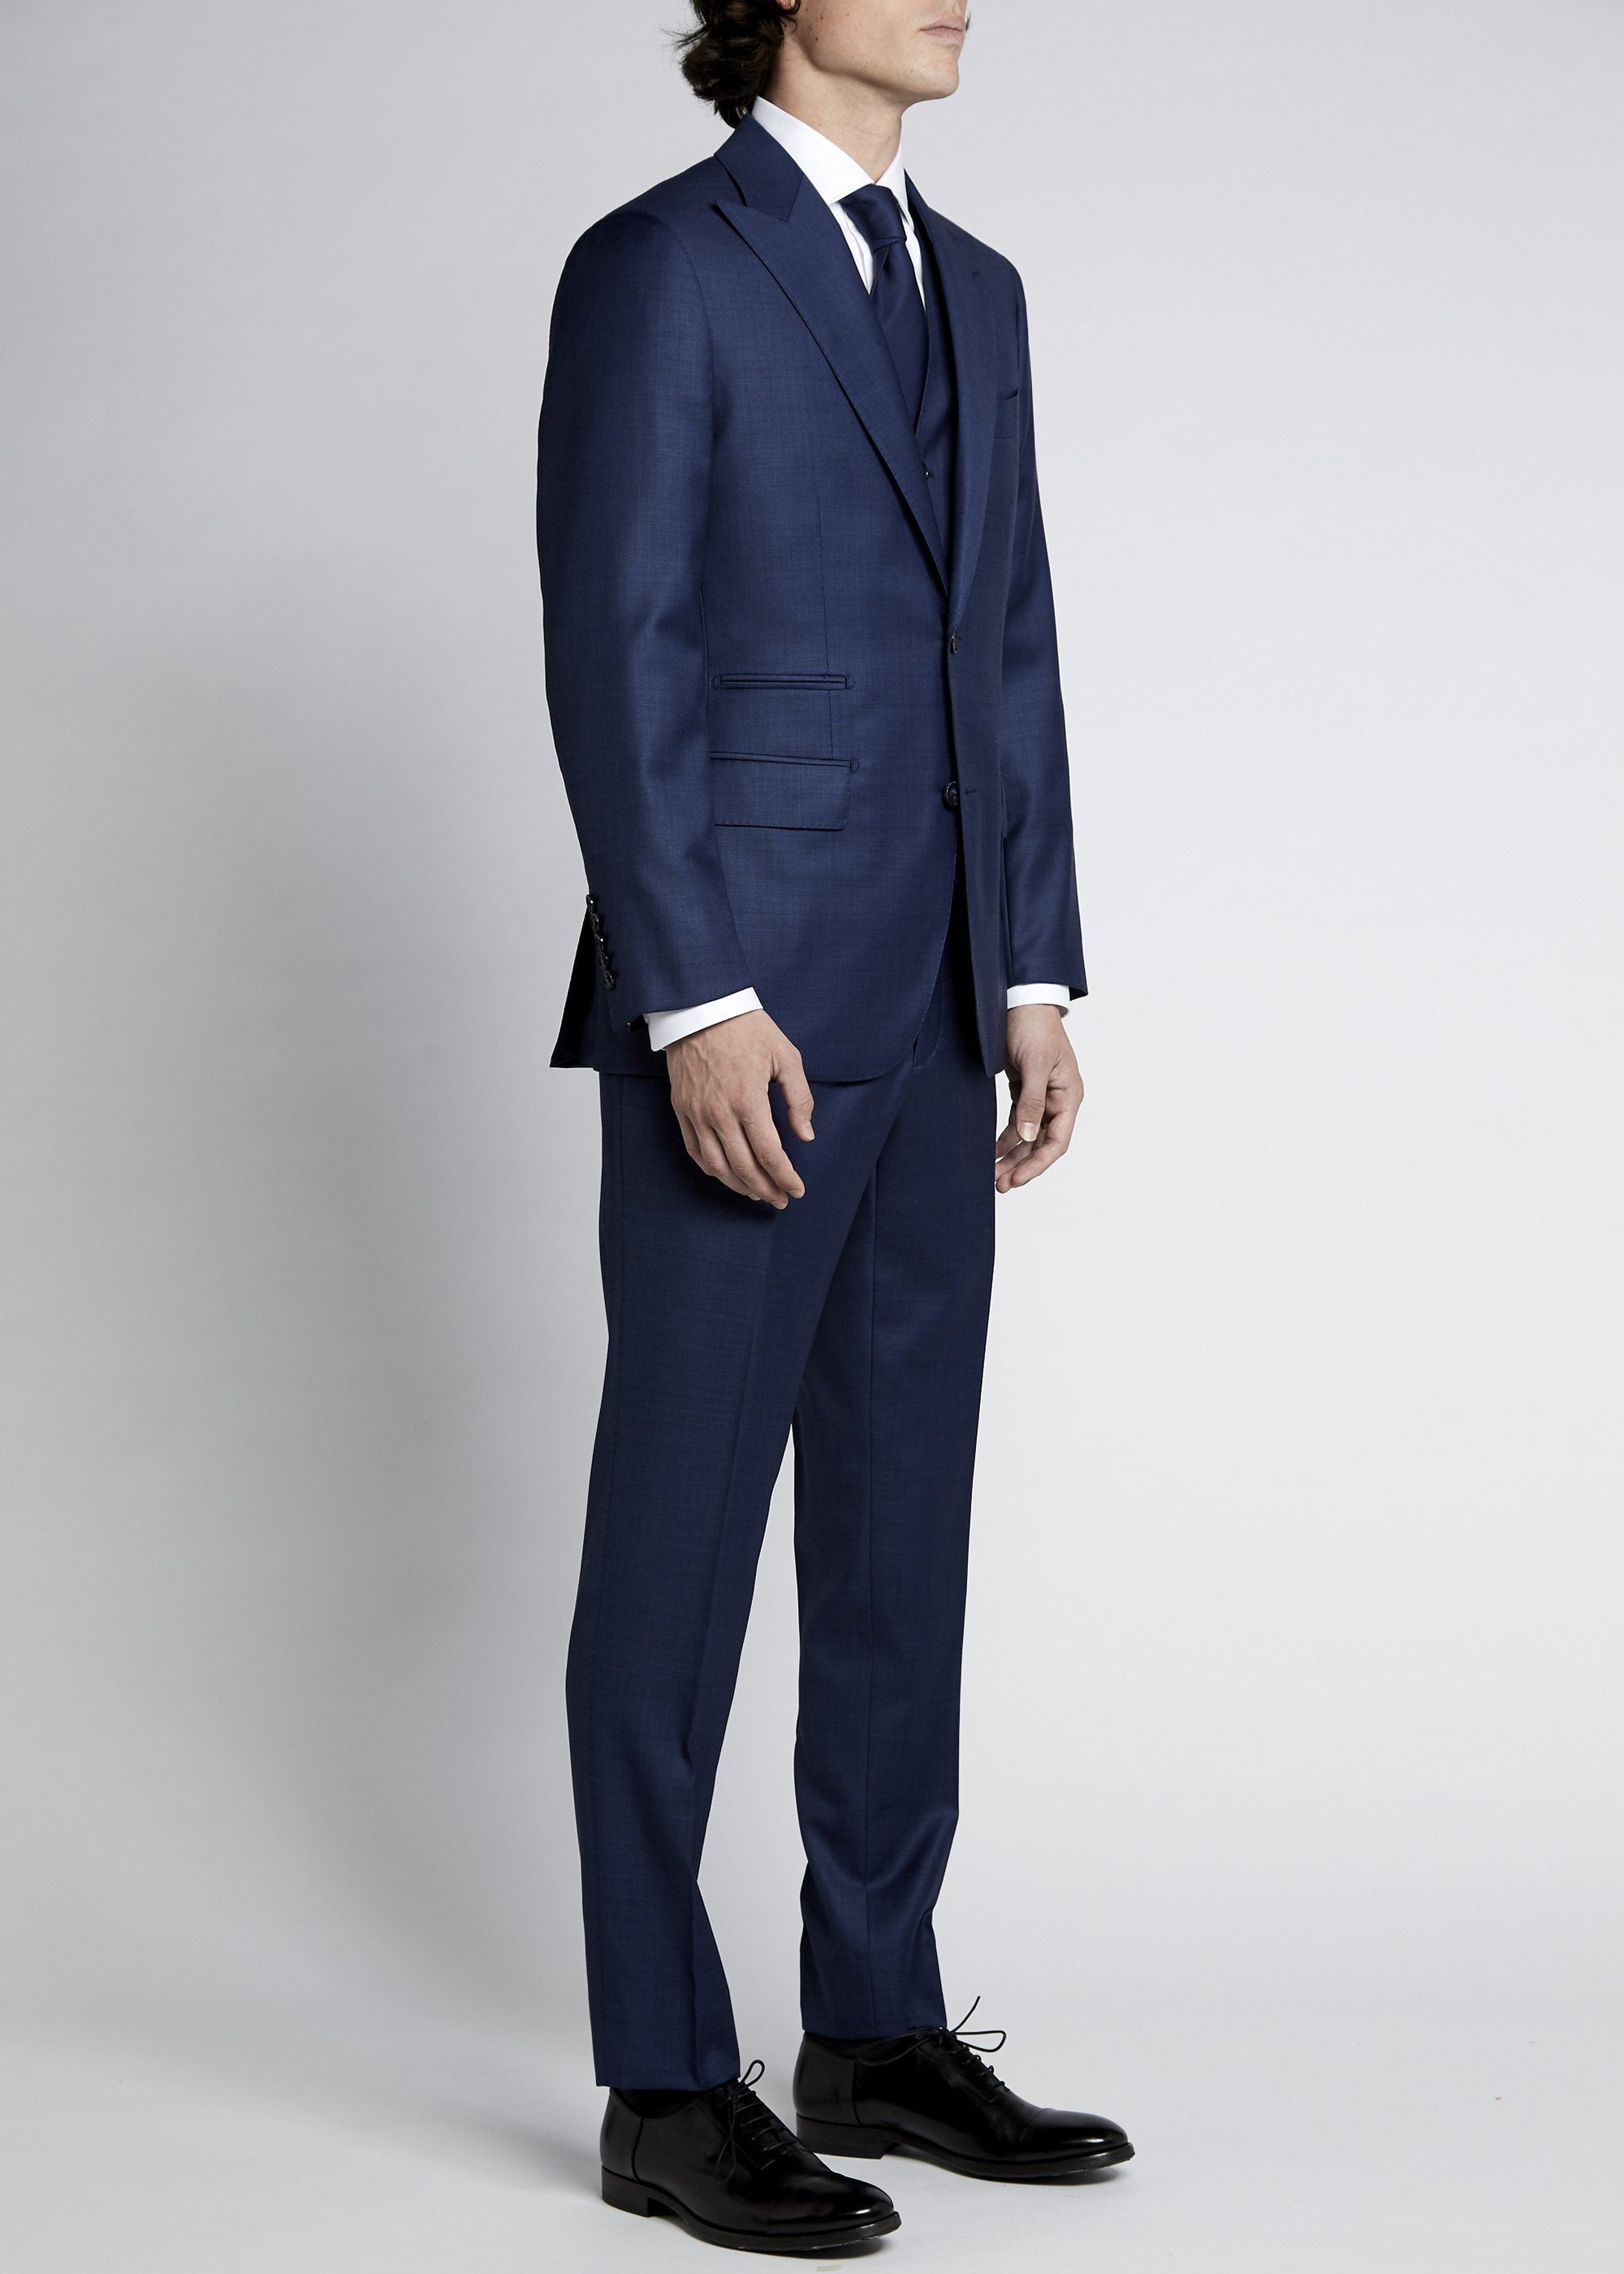 Jonah Suit - Air Force Navy